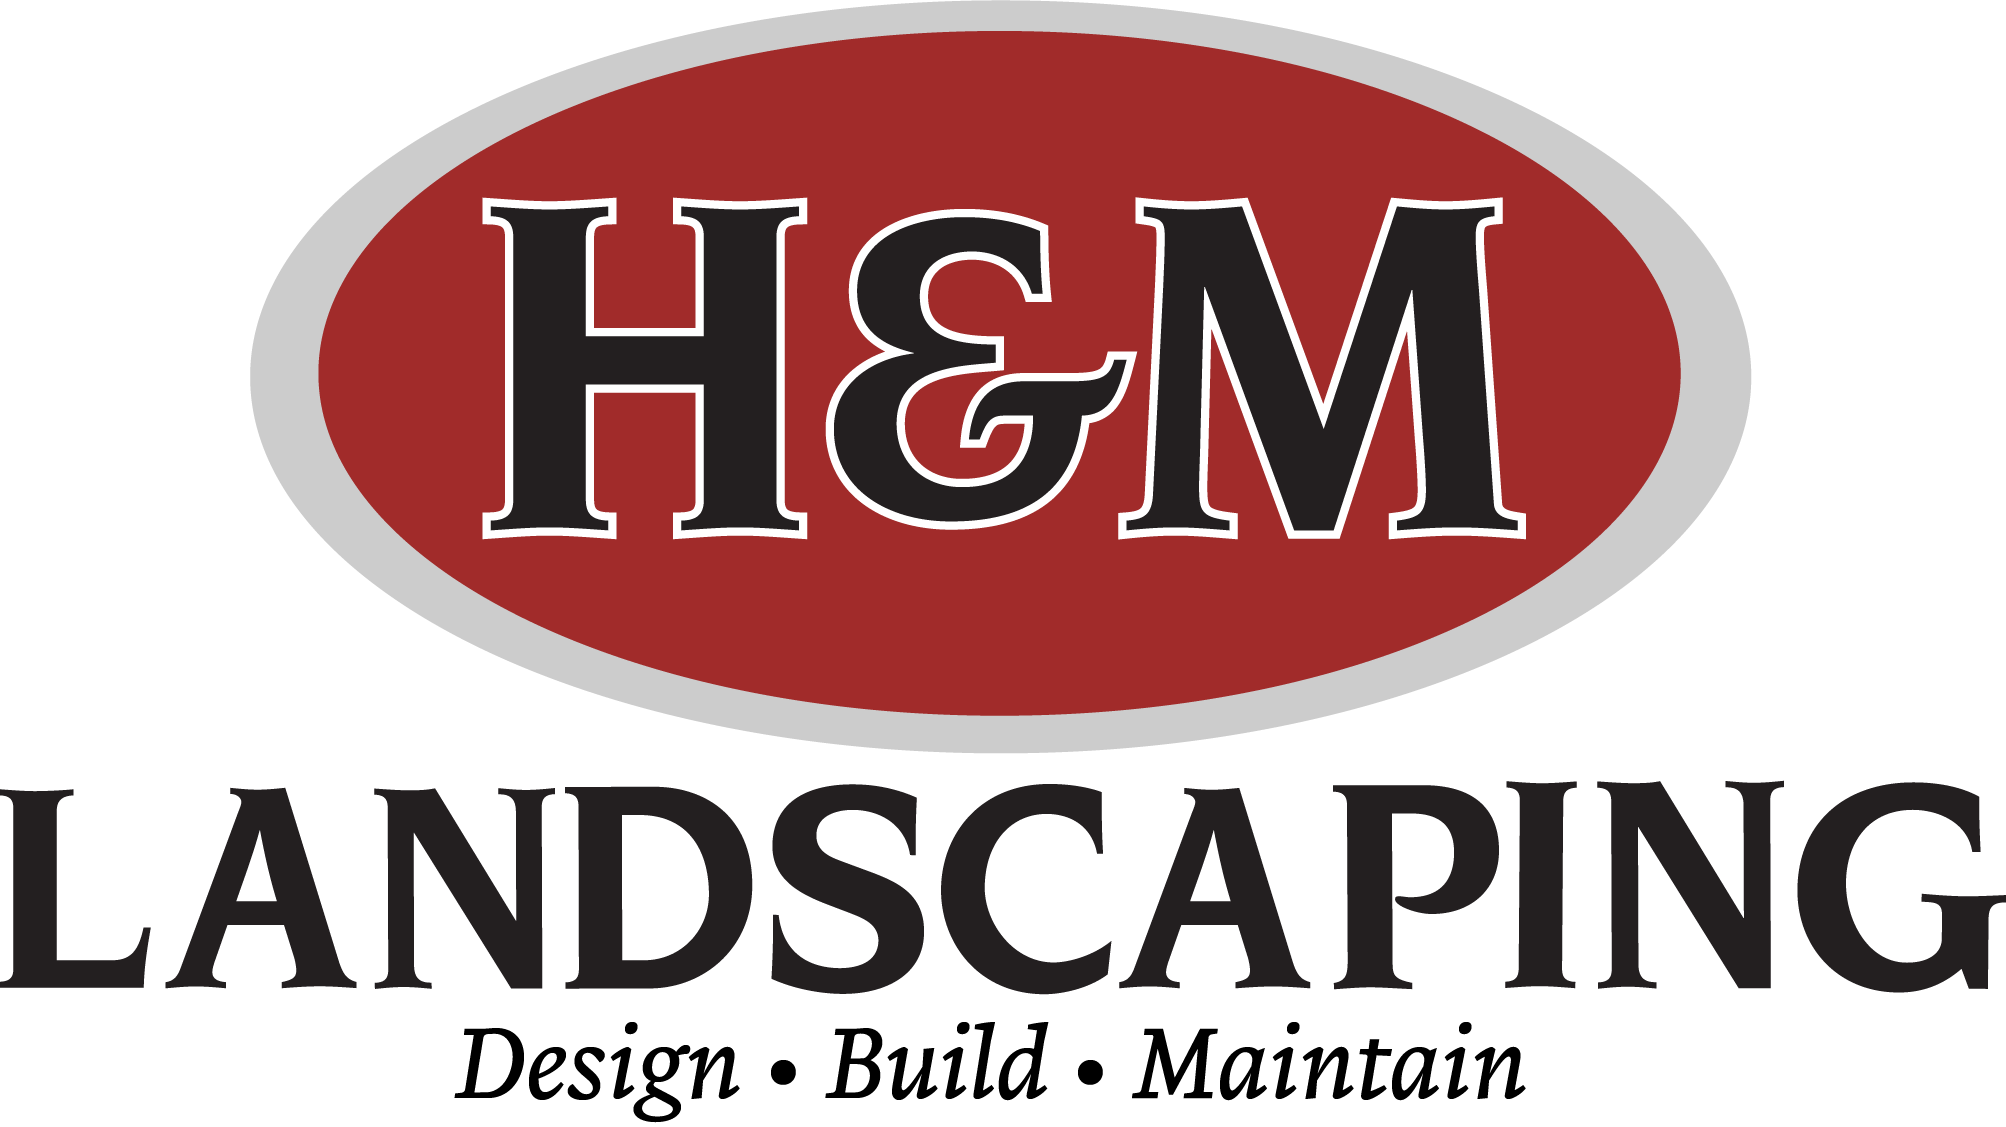 H&M Landscaping Cleveland